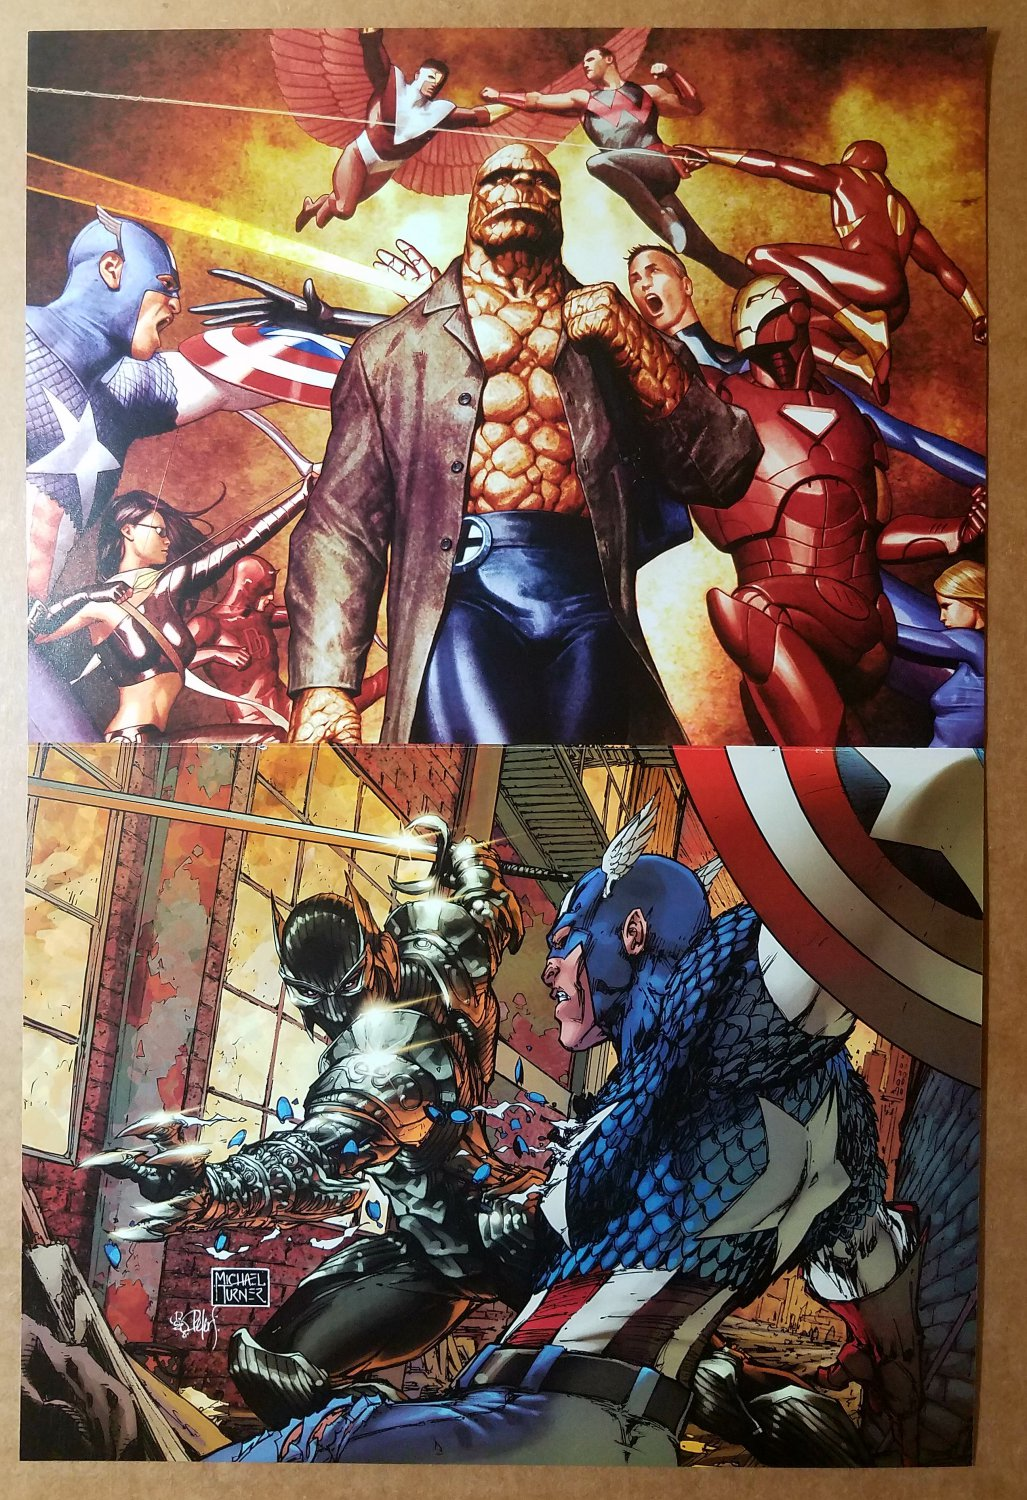 Fantastic Four 541 by Adi Granov Poster Black Panther 23 by Michael Turner